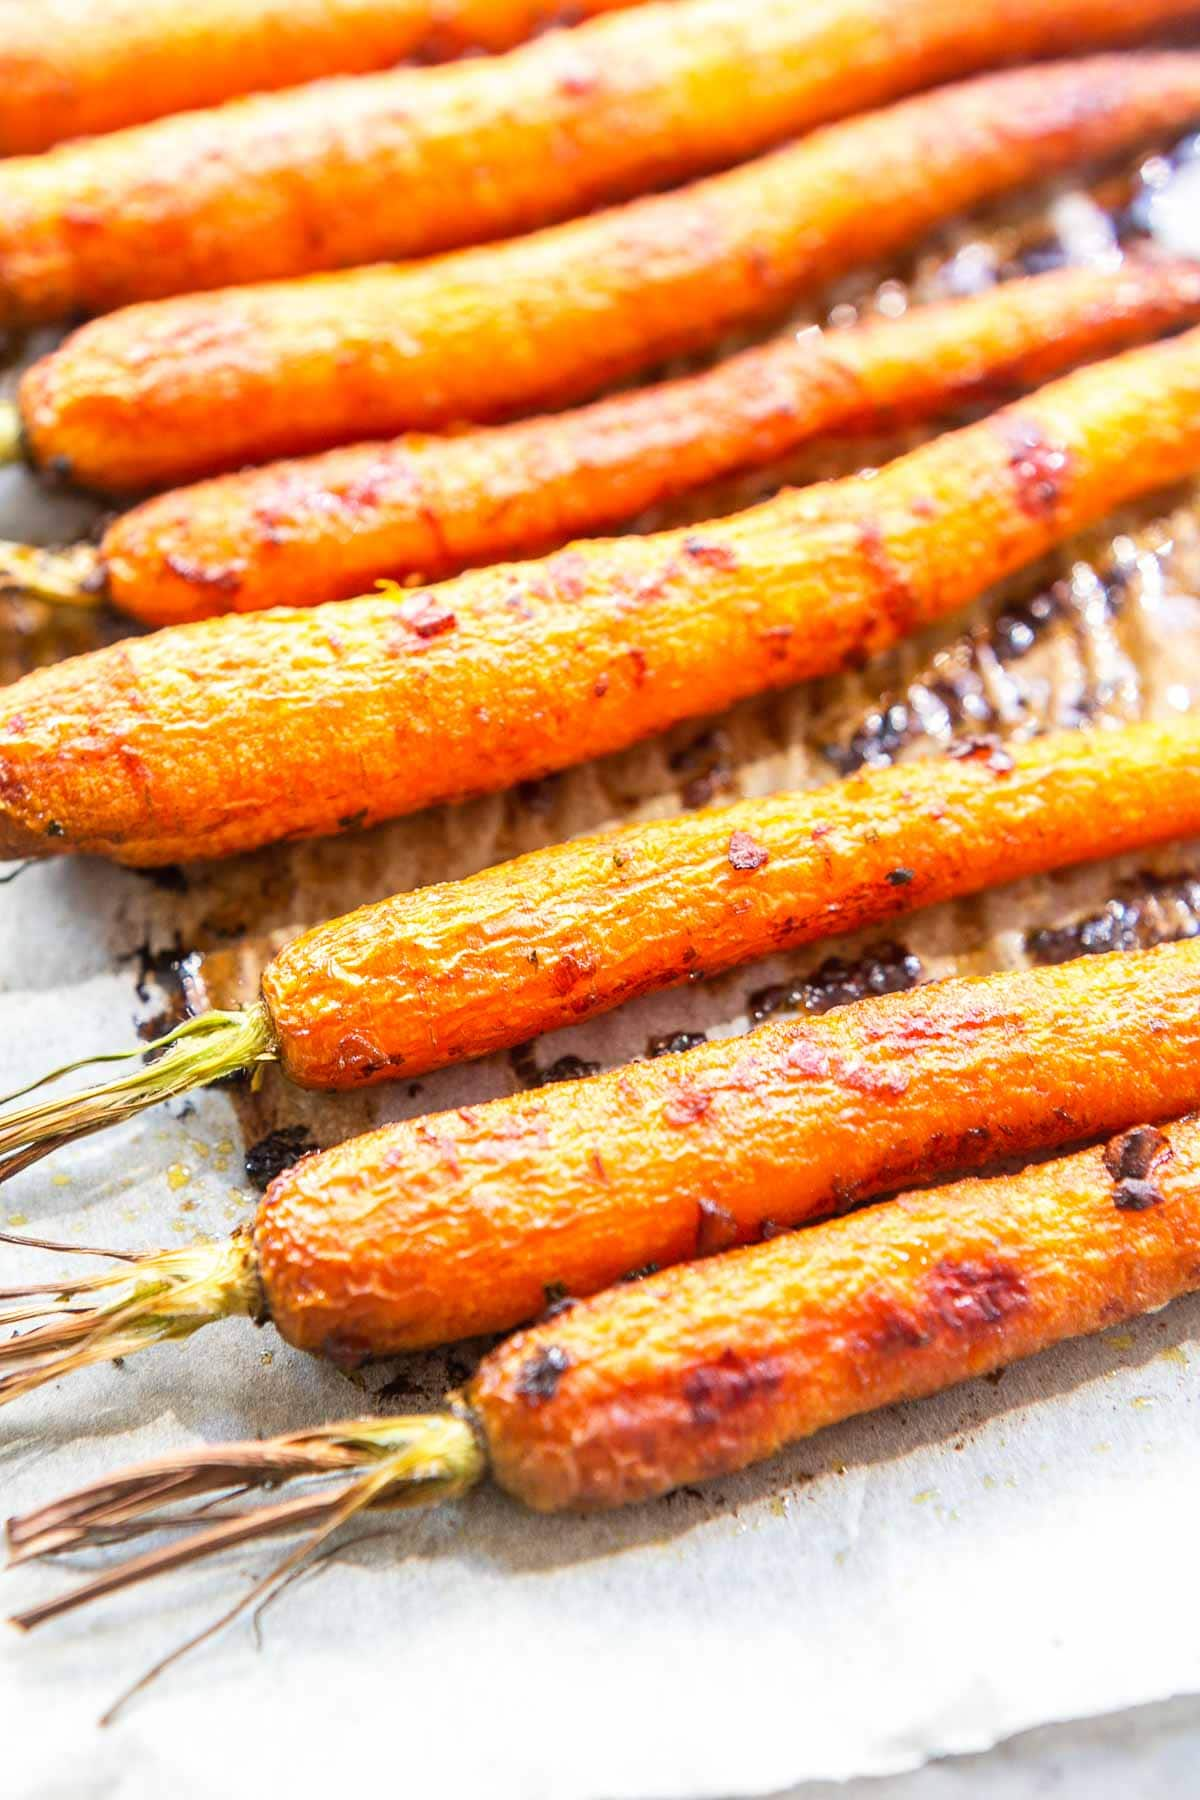 Honey garlic carrots is a great side dish. Super tasty recipe that is quick and easy. Visit fastfoodbistro.com for the full recipe #fastfoodbistro #sidedish #honeygarliccarrots #carrots #vegetables